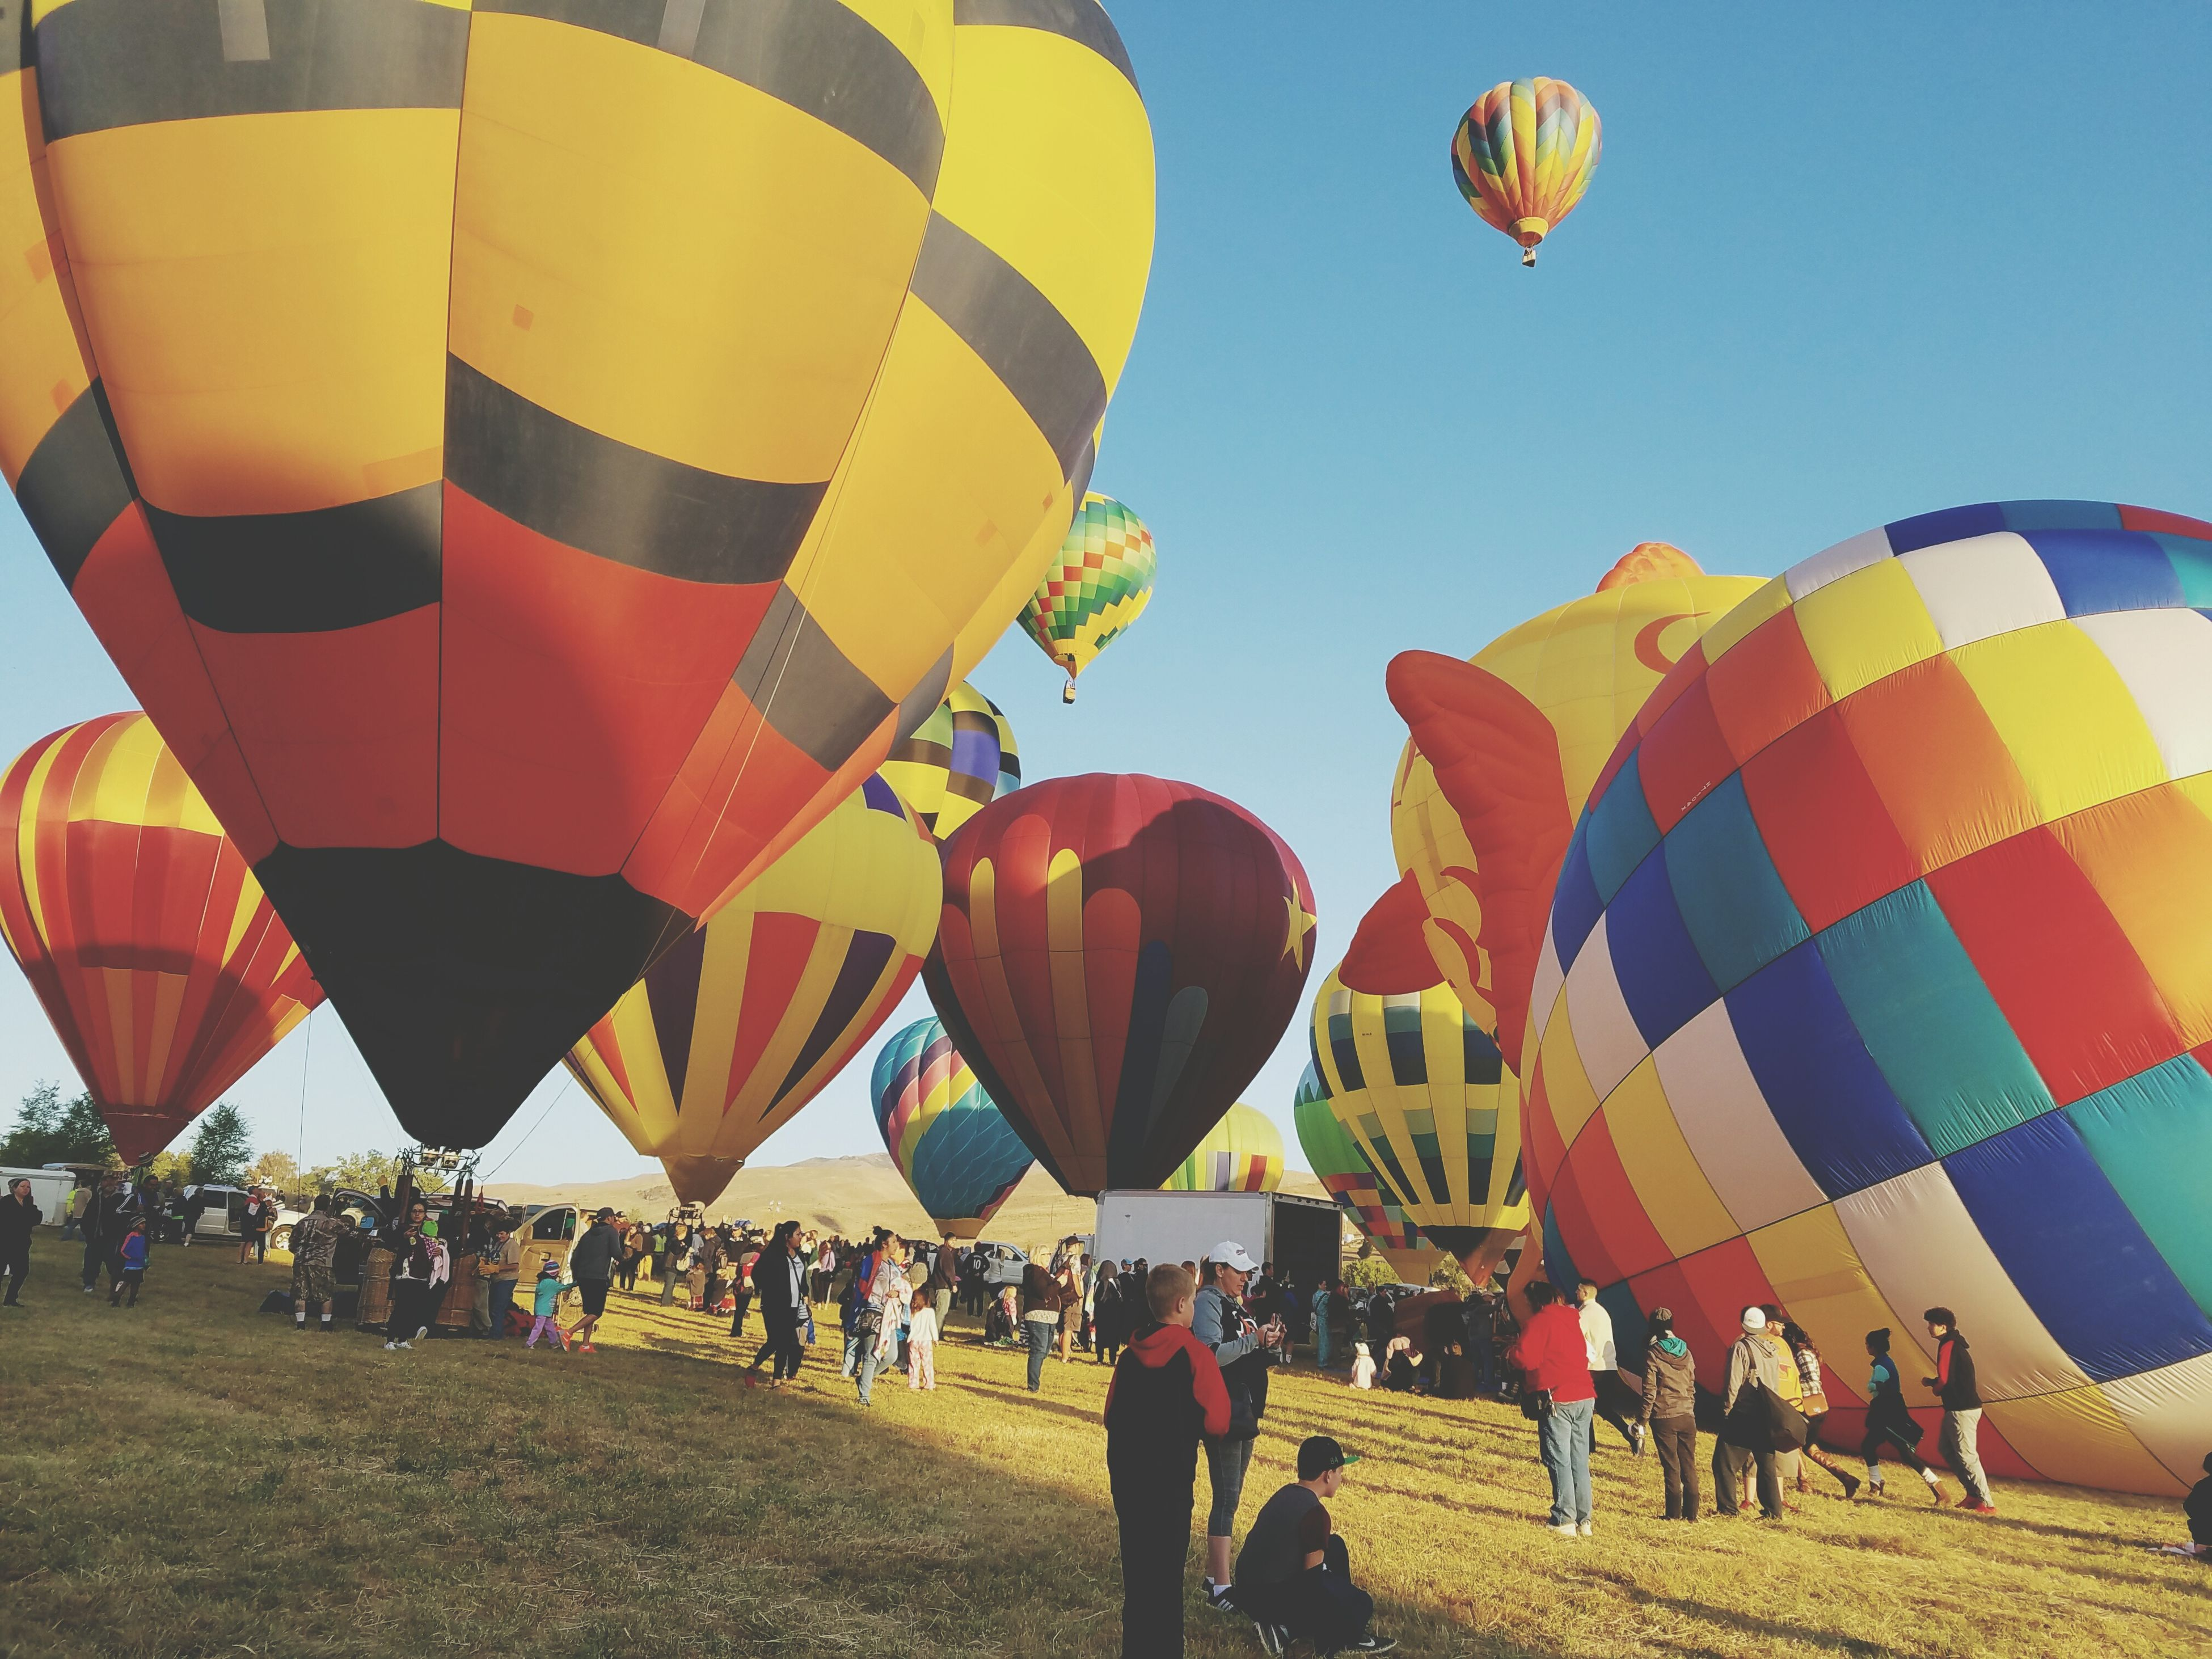 multi colored, large group of people, hot air balloon, clear sky, tourism, tourist, traditional festival, flying, leisure activity, person, mid-air, variation, travel destinations, travel, cultures, group of objects, hanging, lantern, day, paper lantern, city, sky, outdoors, sunny, decoration, lawn, event, enjoyment, fun, amusement park